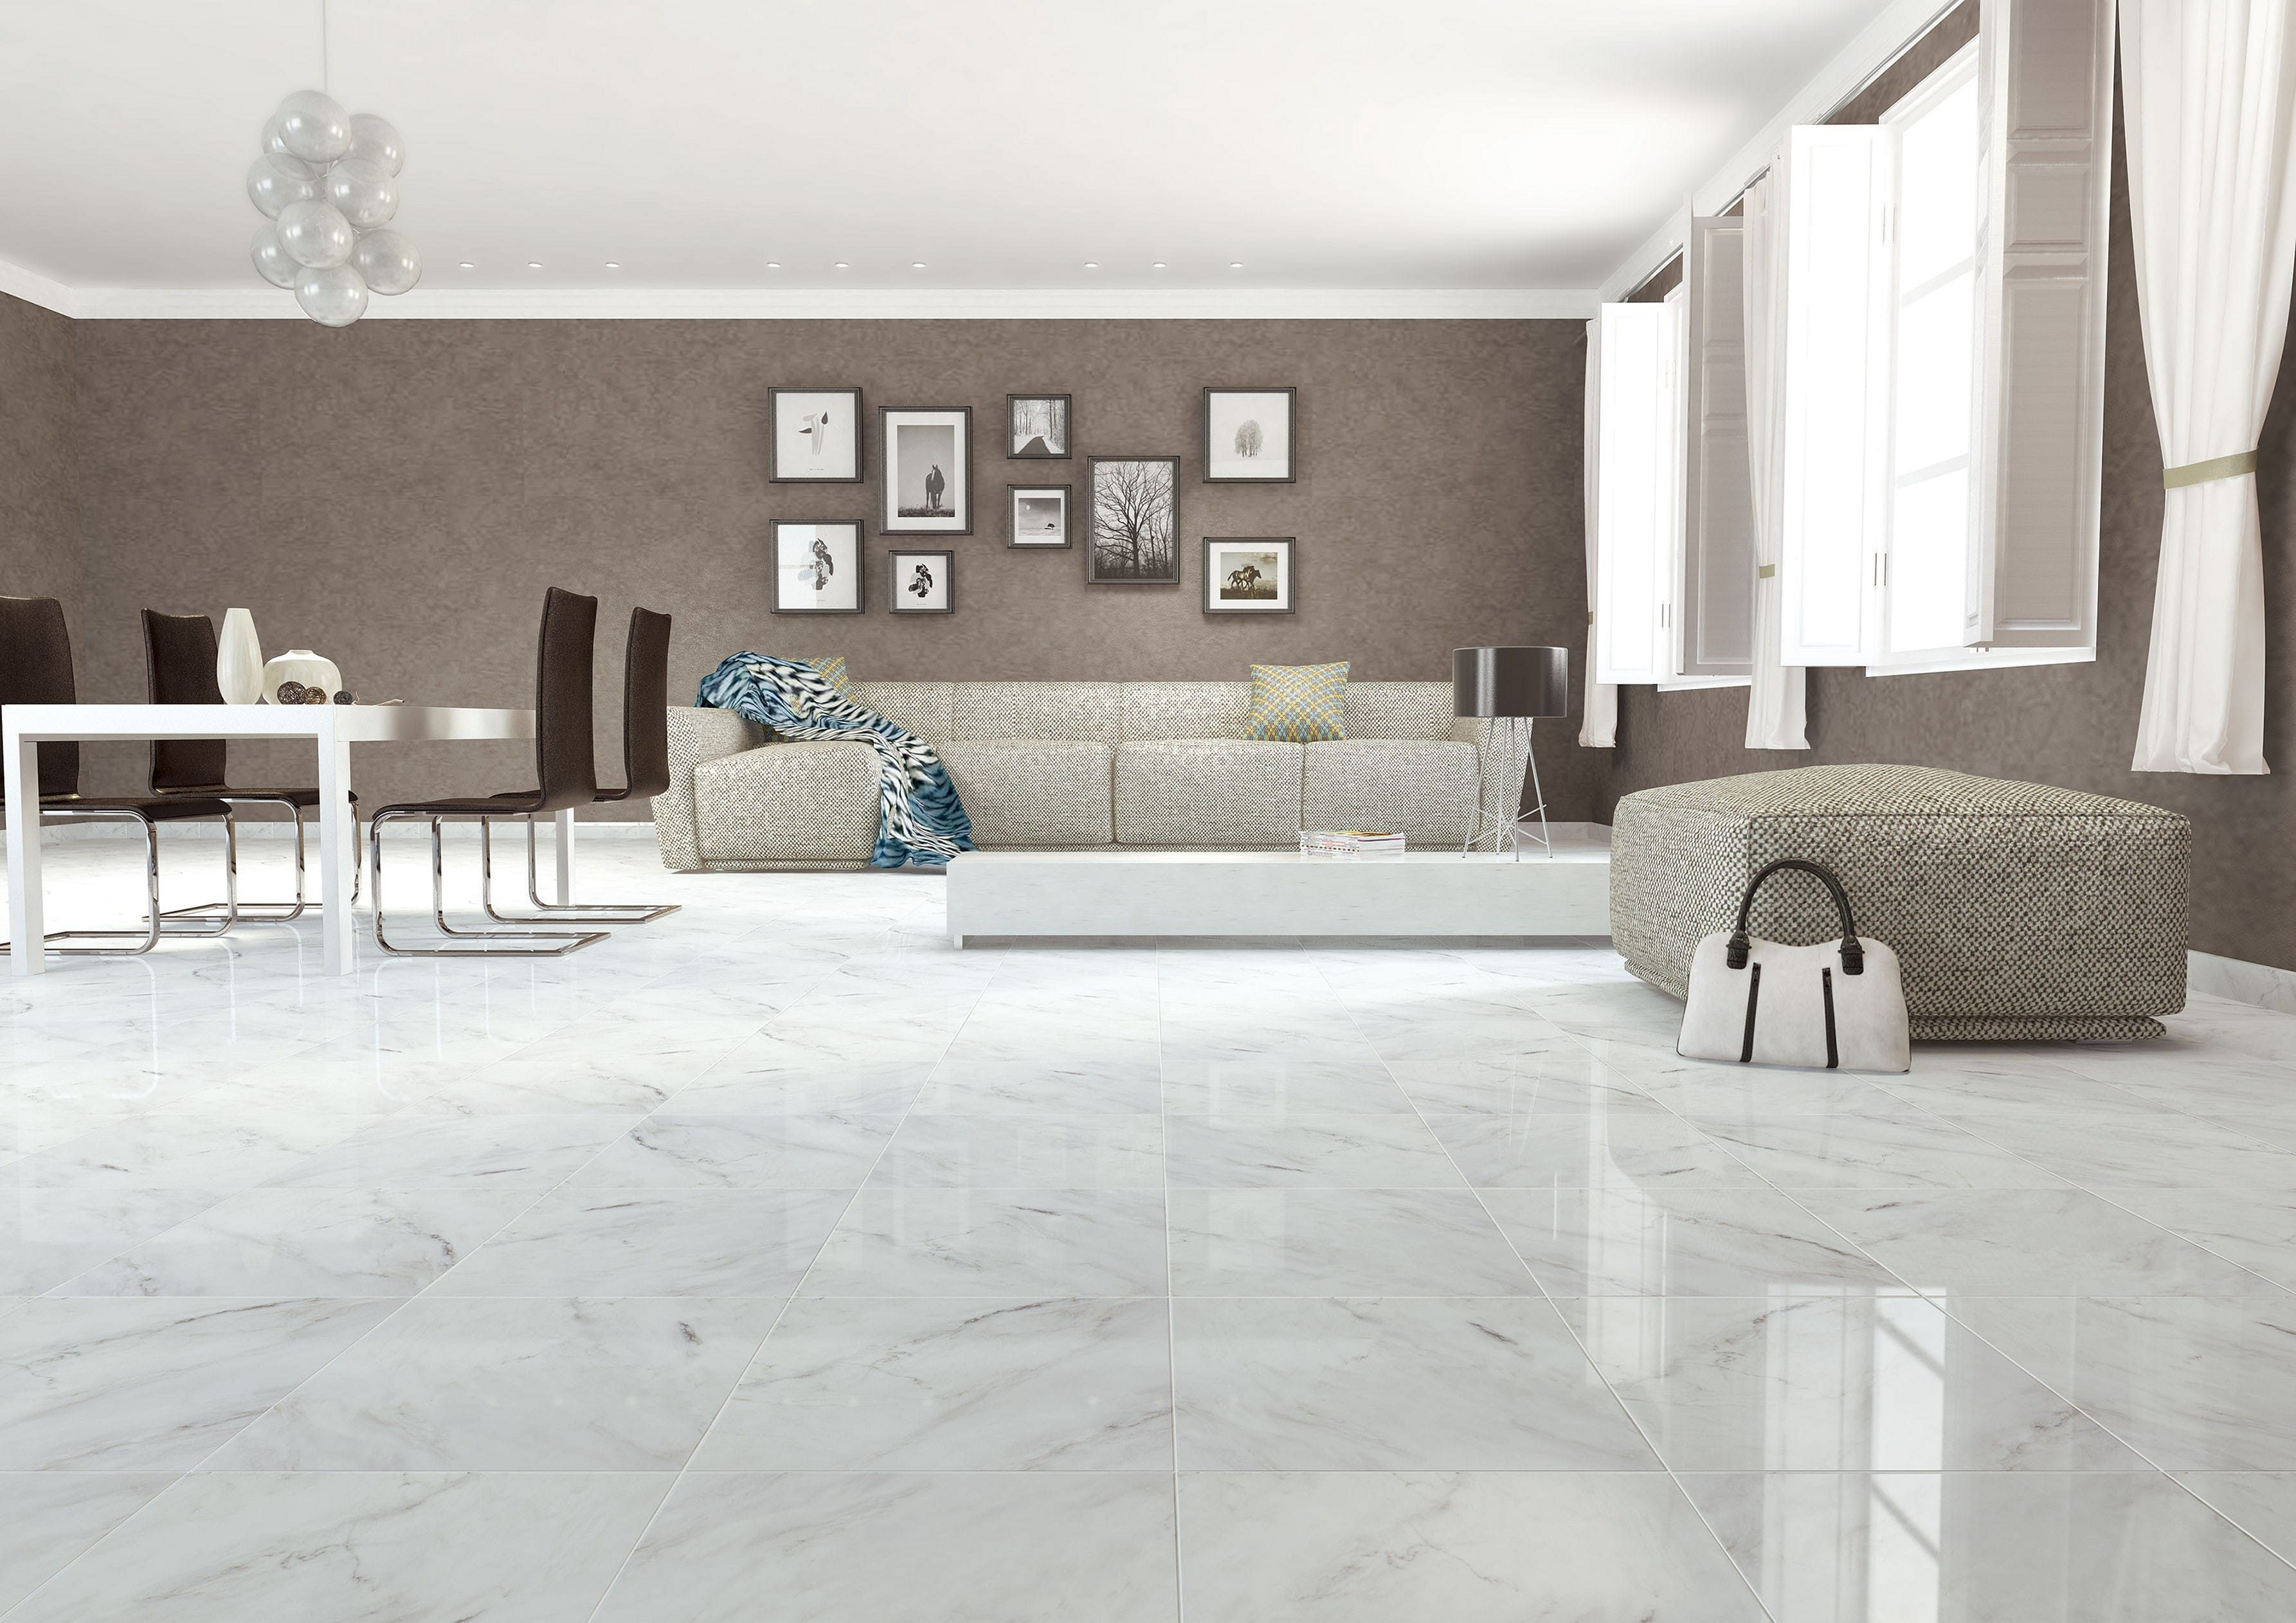 12 Amazing Living Room Design With Floor Granite Tile Ideas Tile